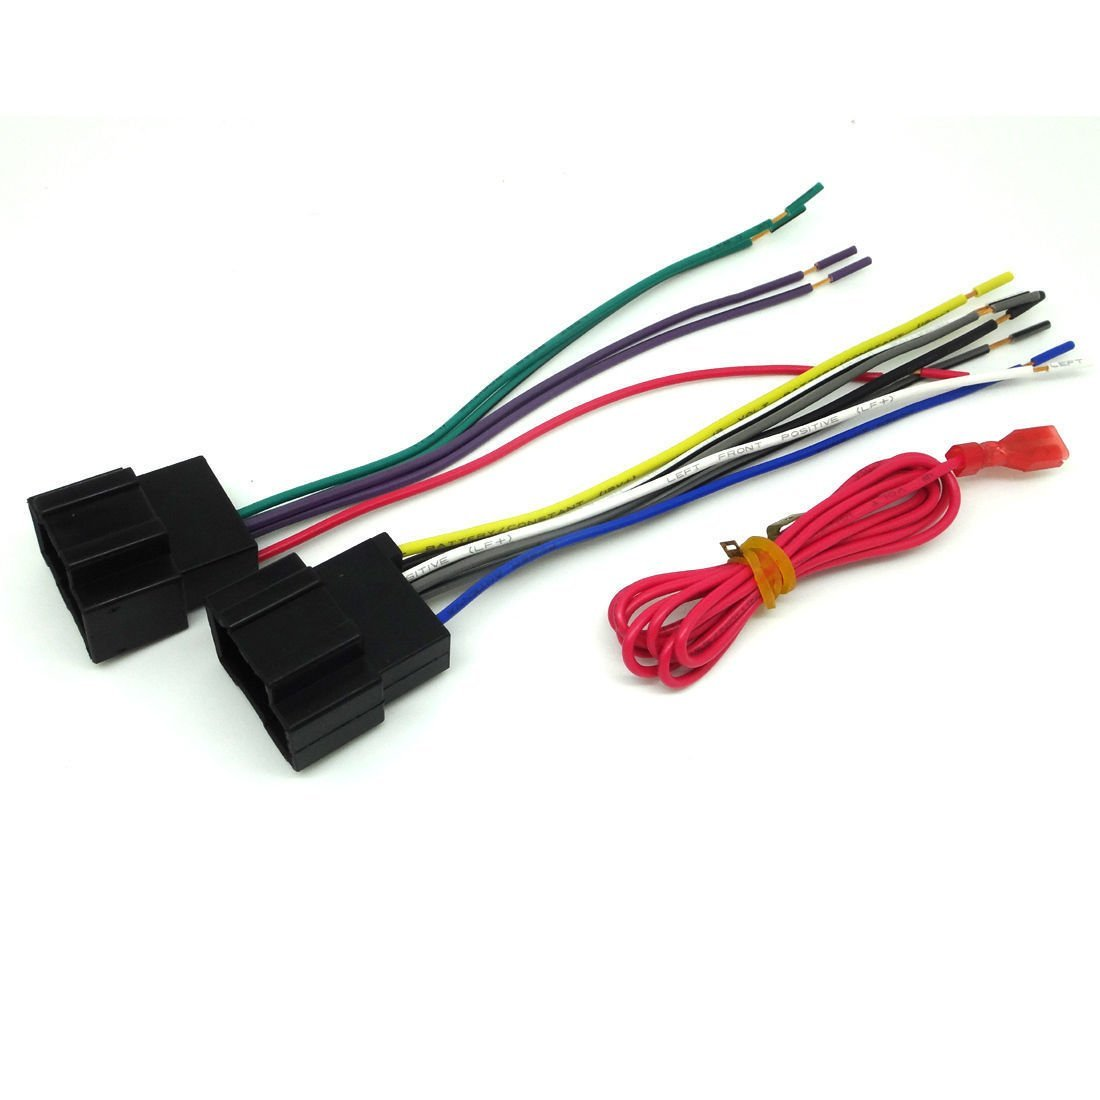 Buy ConPus GM CAR STEREO CD PLAYER WIRING HARNESS WIRE ... on